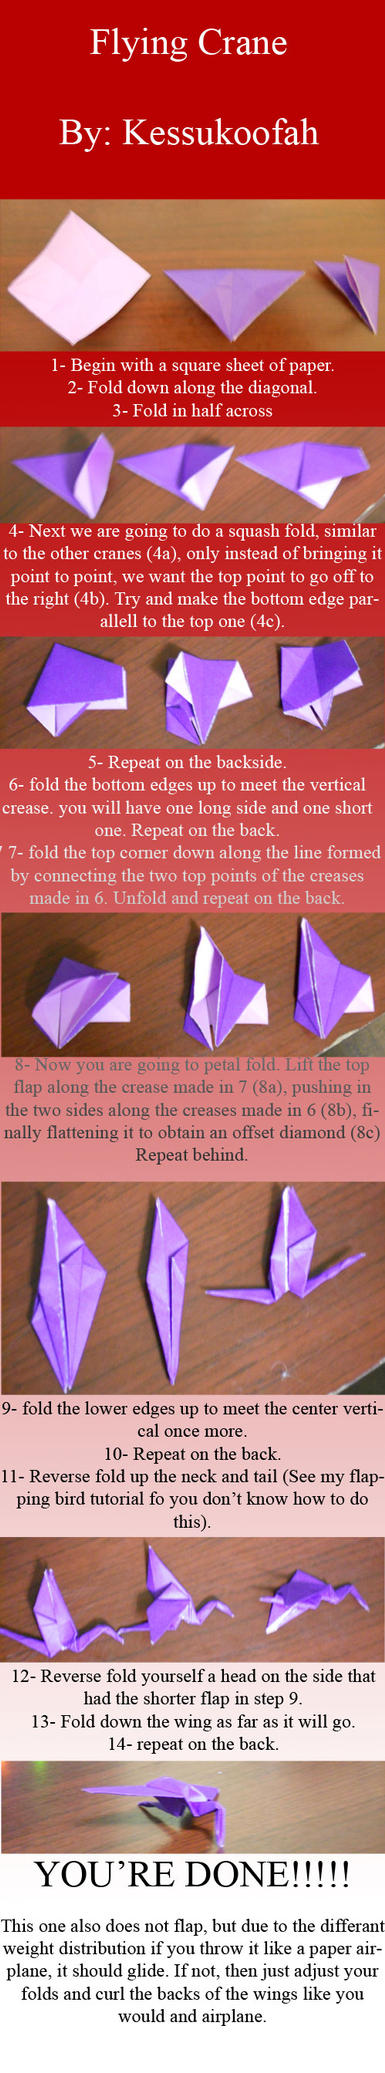 Tutorial: Flying Crane by Kessukoofah